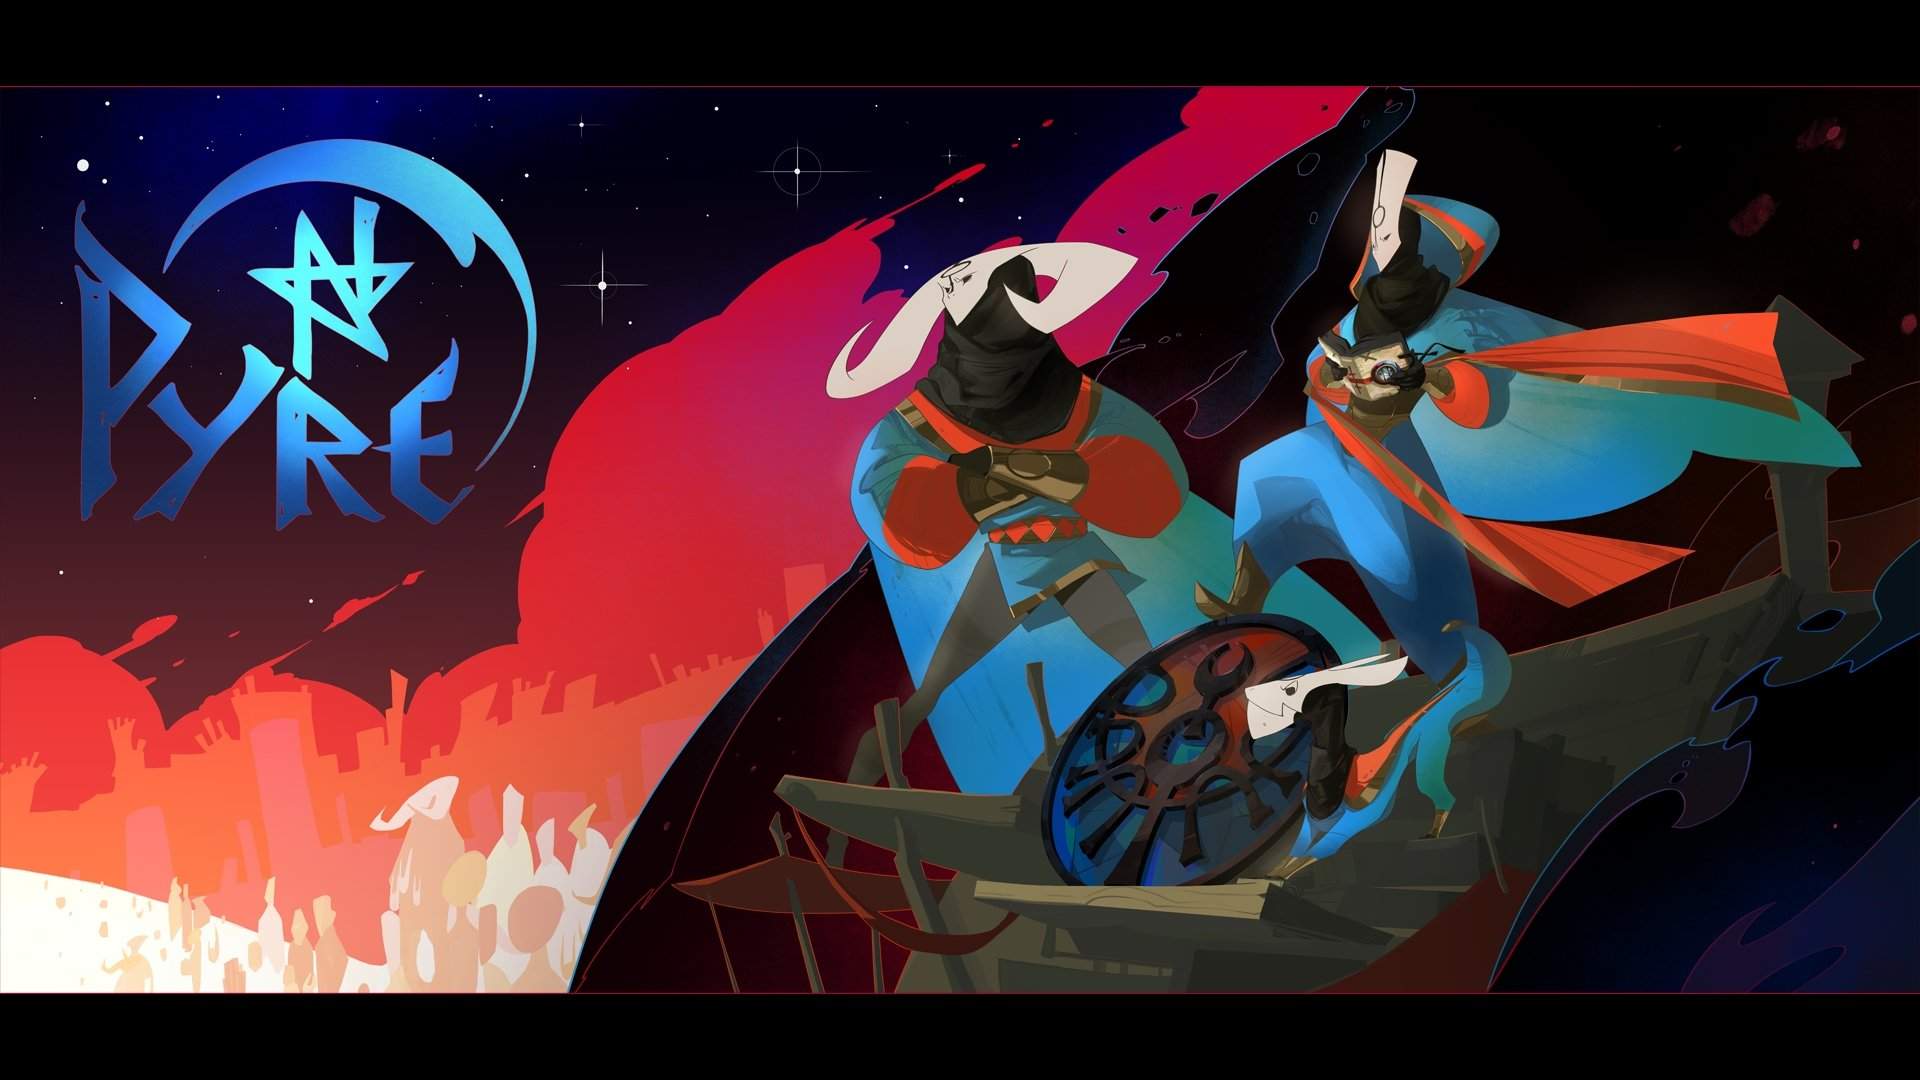 pyre game игра supergiant games pax east 2016 отвратительные мужики disgusting men